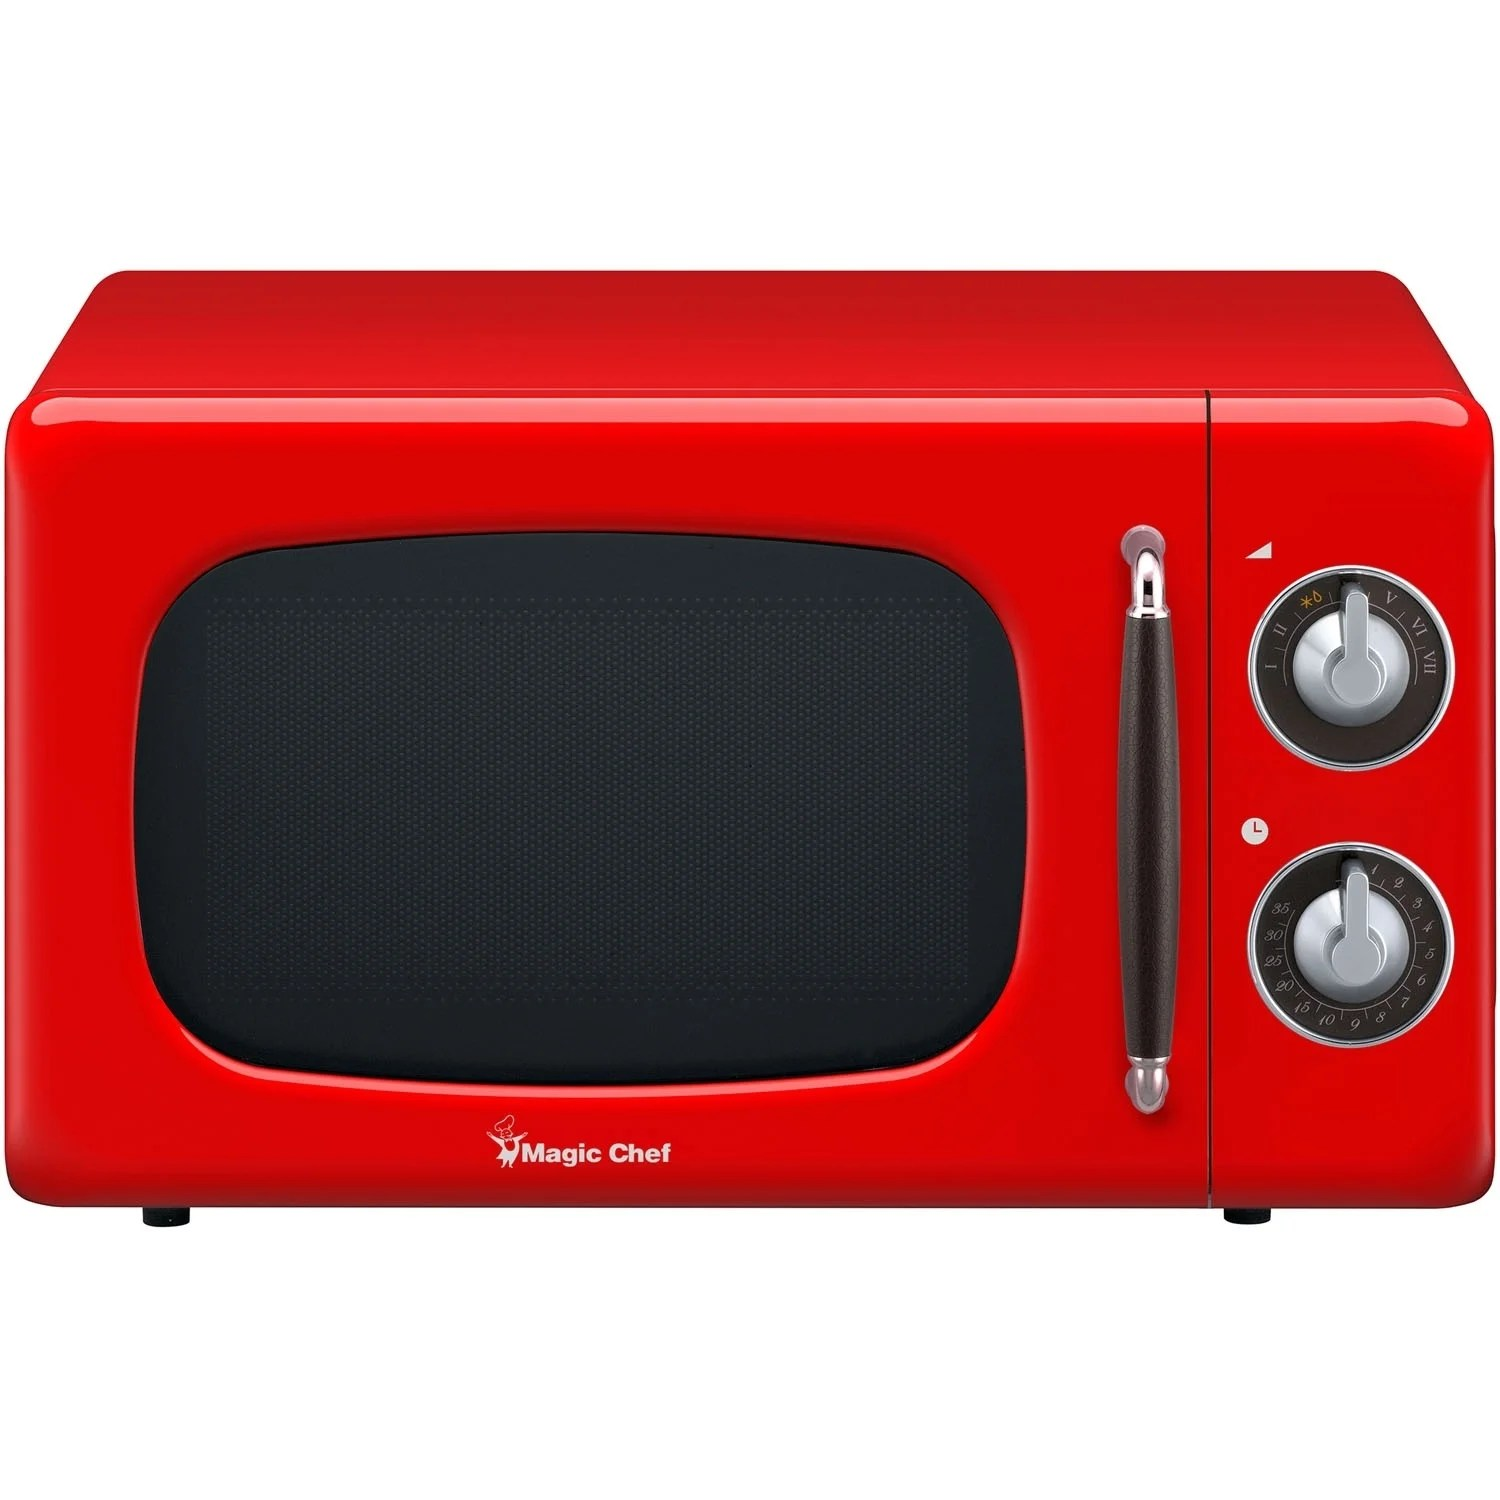 red microwave oven 700w digital led